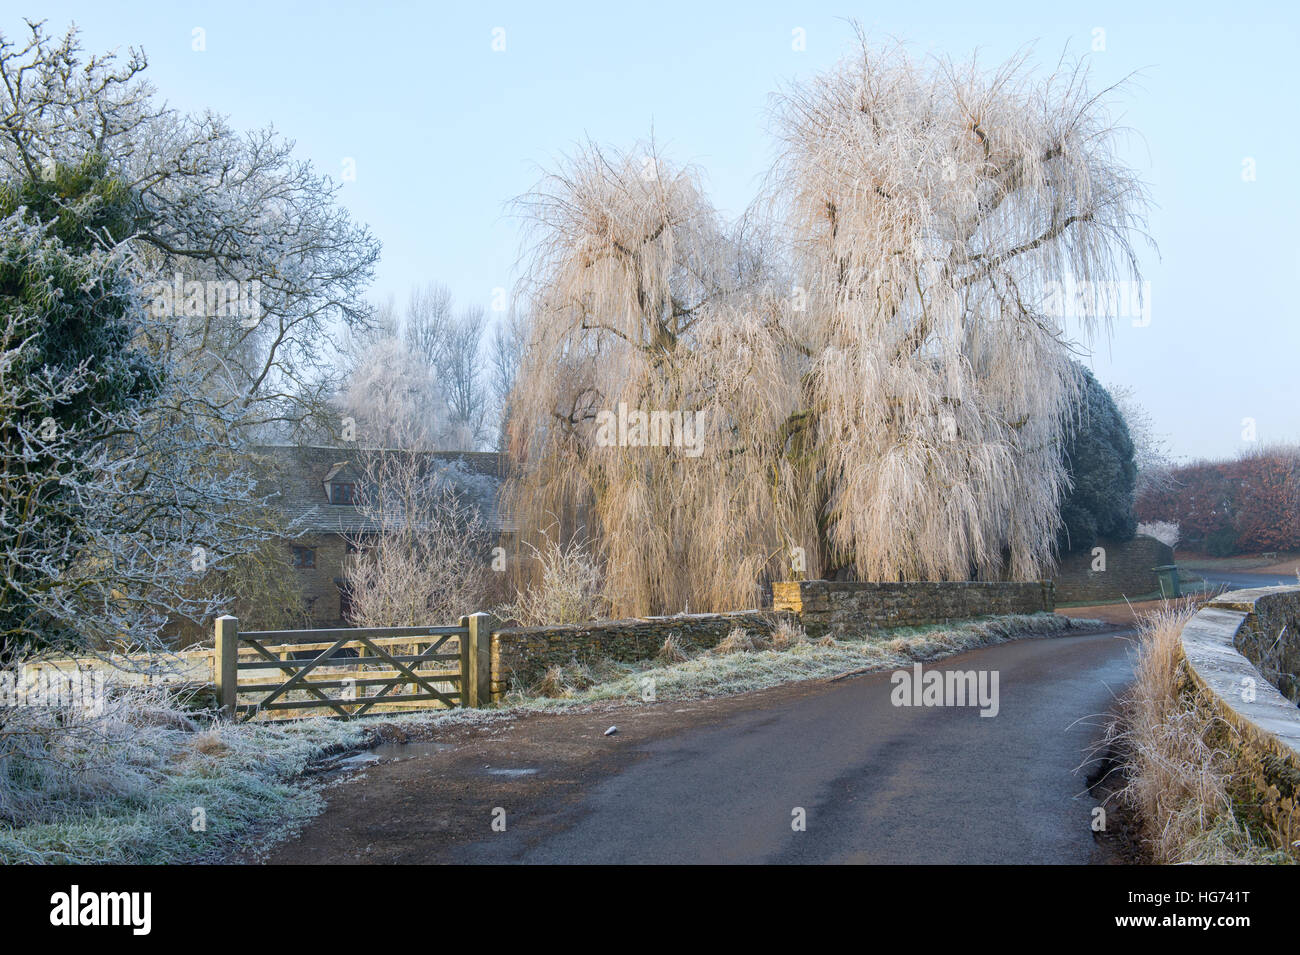 Weeping willow trees and the Mill house covered in a hoar frost in winter. Somerton, North Oxfordshire, England - Stock Image